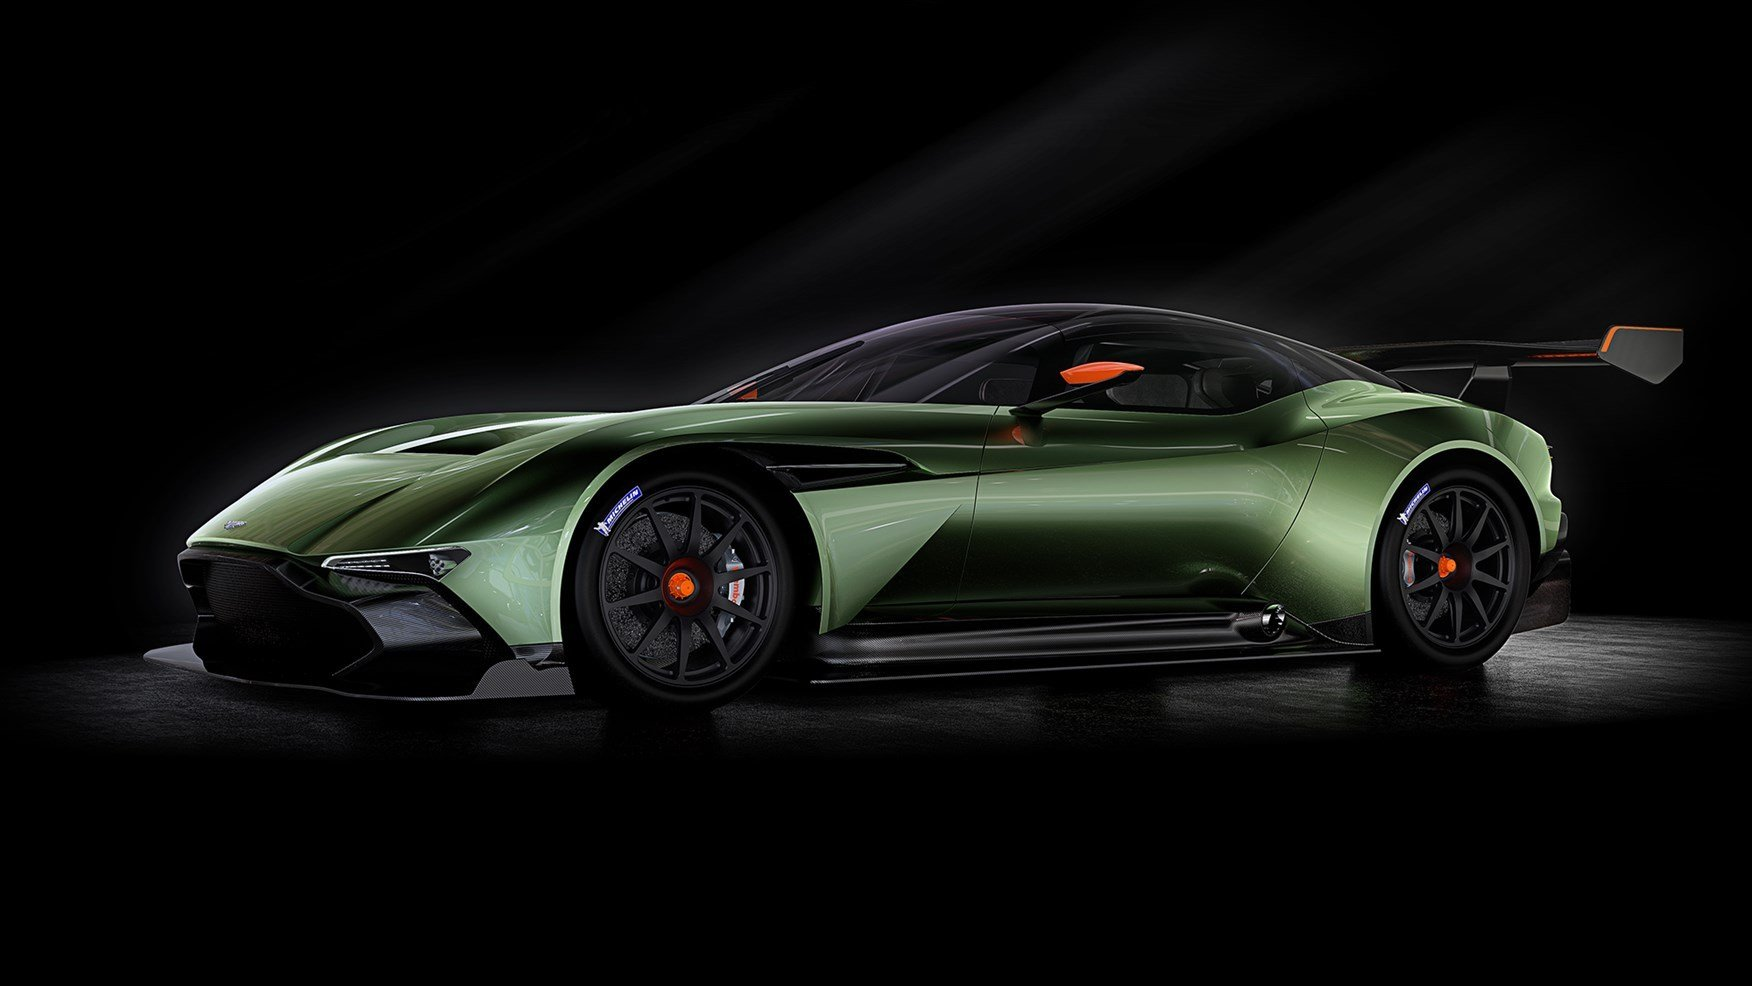 Latest Aston Martin Vulcan Unveiled 24 Extreme Track Day Cars Free Download